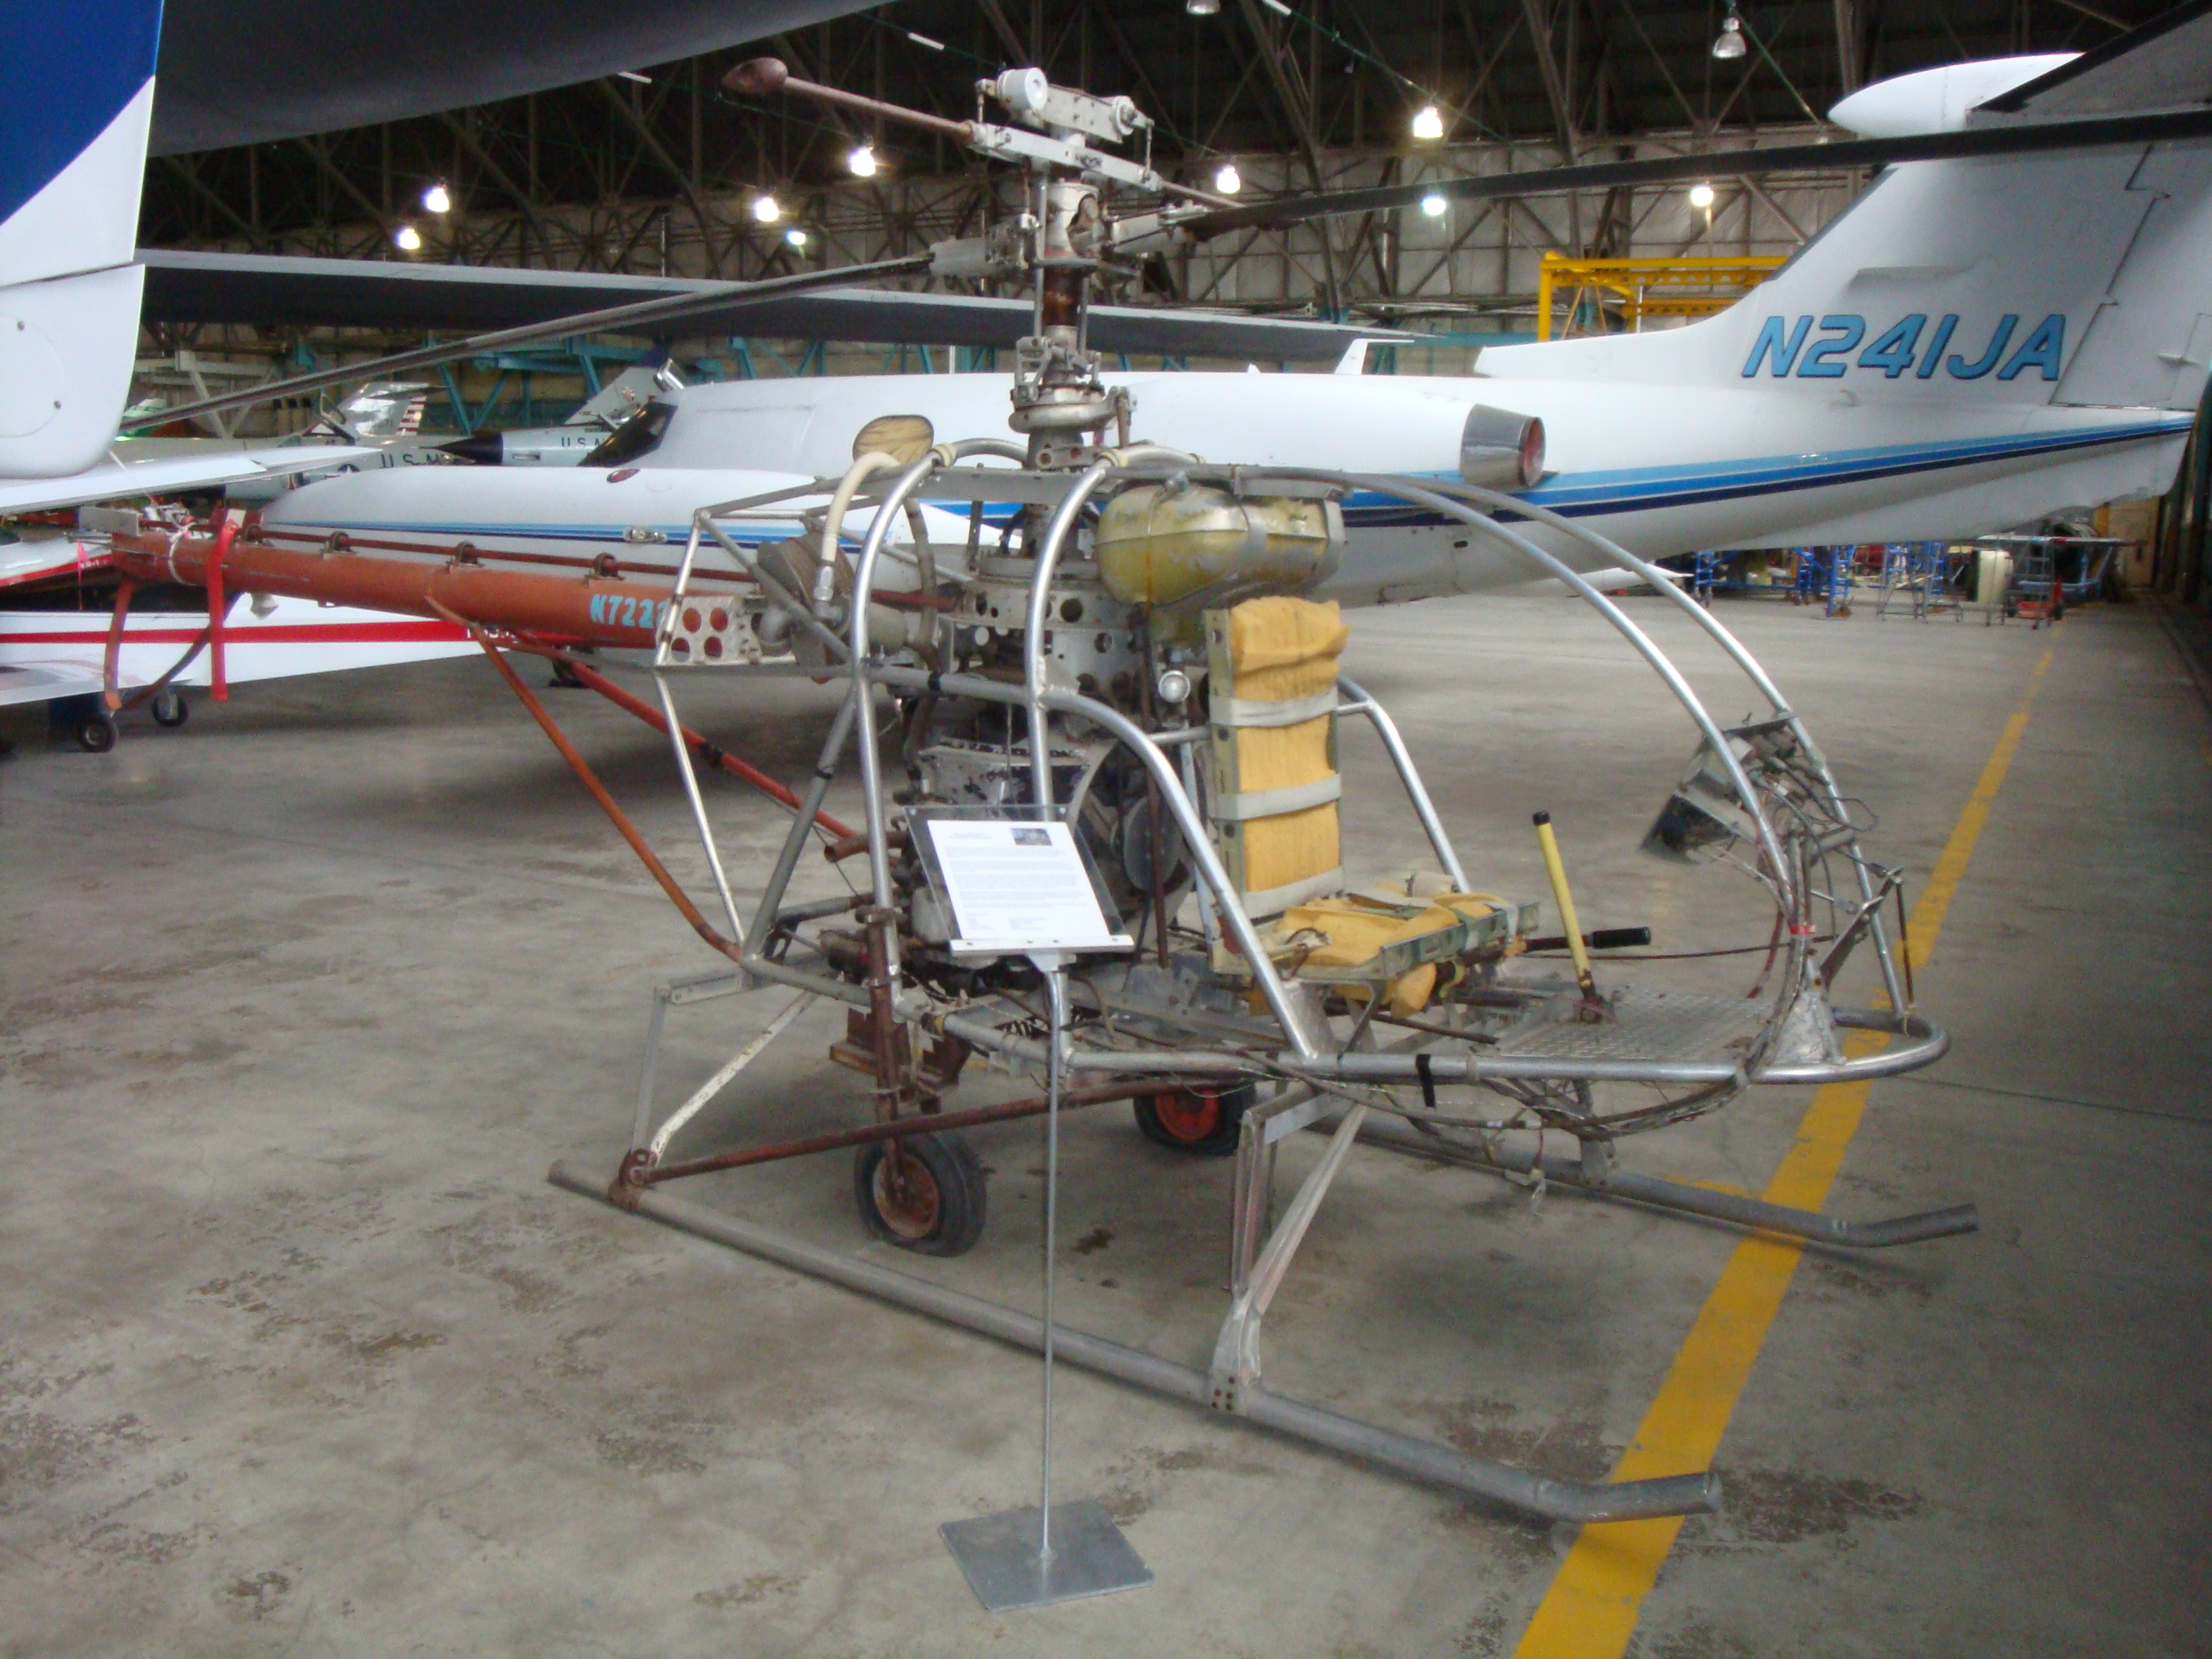 helicopter license price with File Murray Model T Homebuilt Helicopter  4282648989 on File Murray Model T Homebuilt Helicopter  4282648989 in addition H1705CA58 additionally 467495415 furthermore Stock Photo Helicopter Cockpit Aerial View Of Cityscape In Hong Kong  Central District  With Observation Ferris Wheel At Victoria Harbour Illuminated At Night additionally Ka 50 Black Shark  Hokum A.